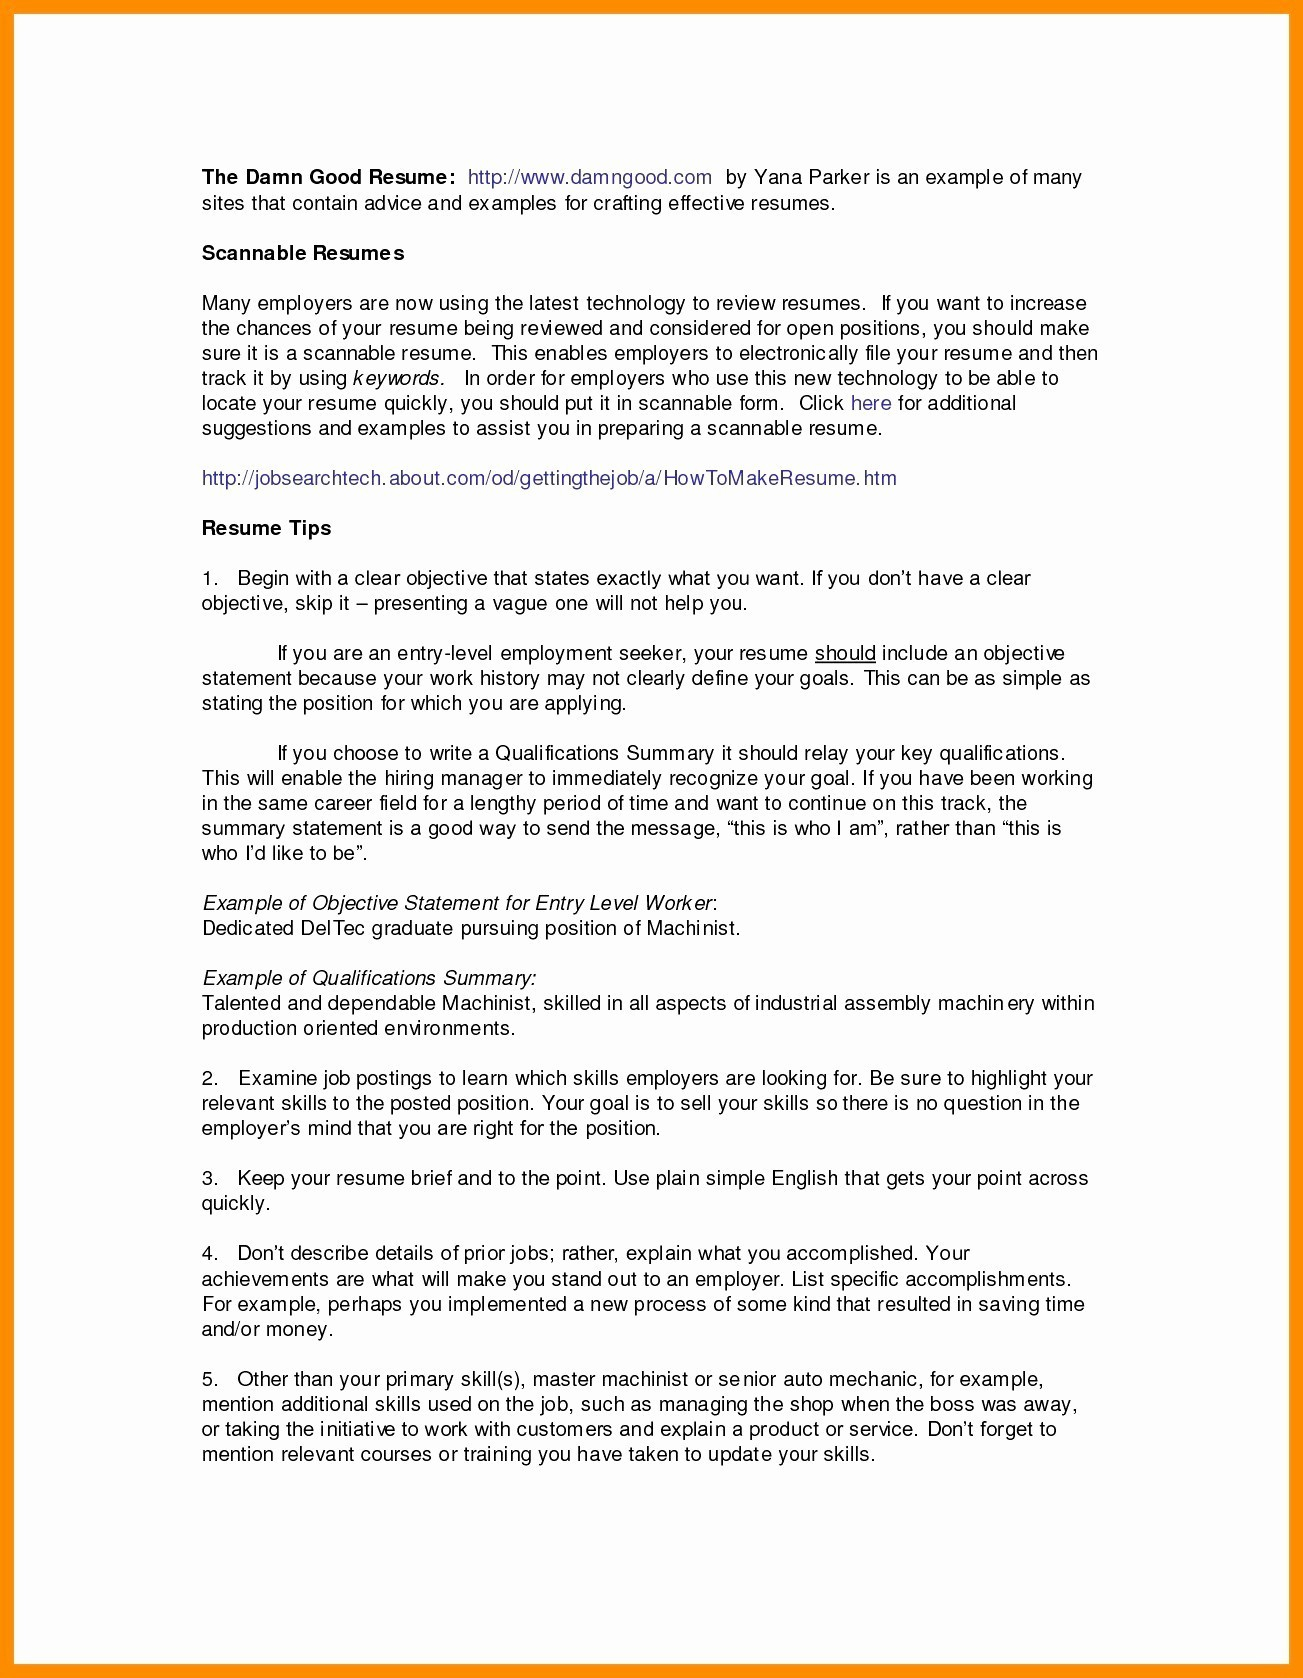 Banking Skills for Resume - Banking Skills for Resume Beneficial Resume Contact Information New